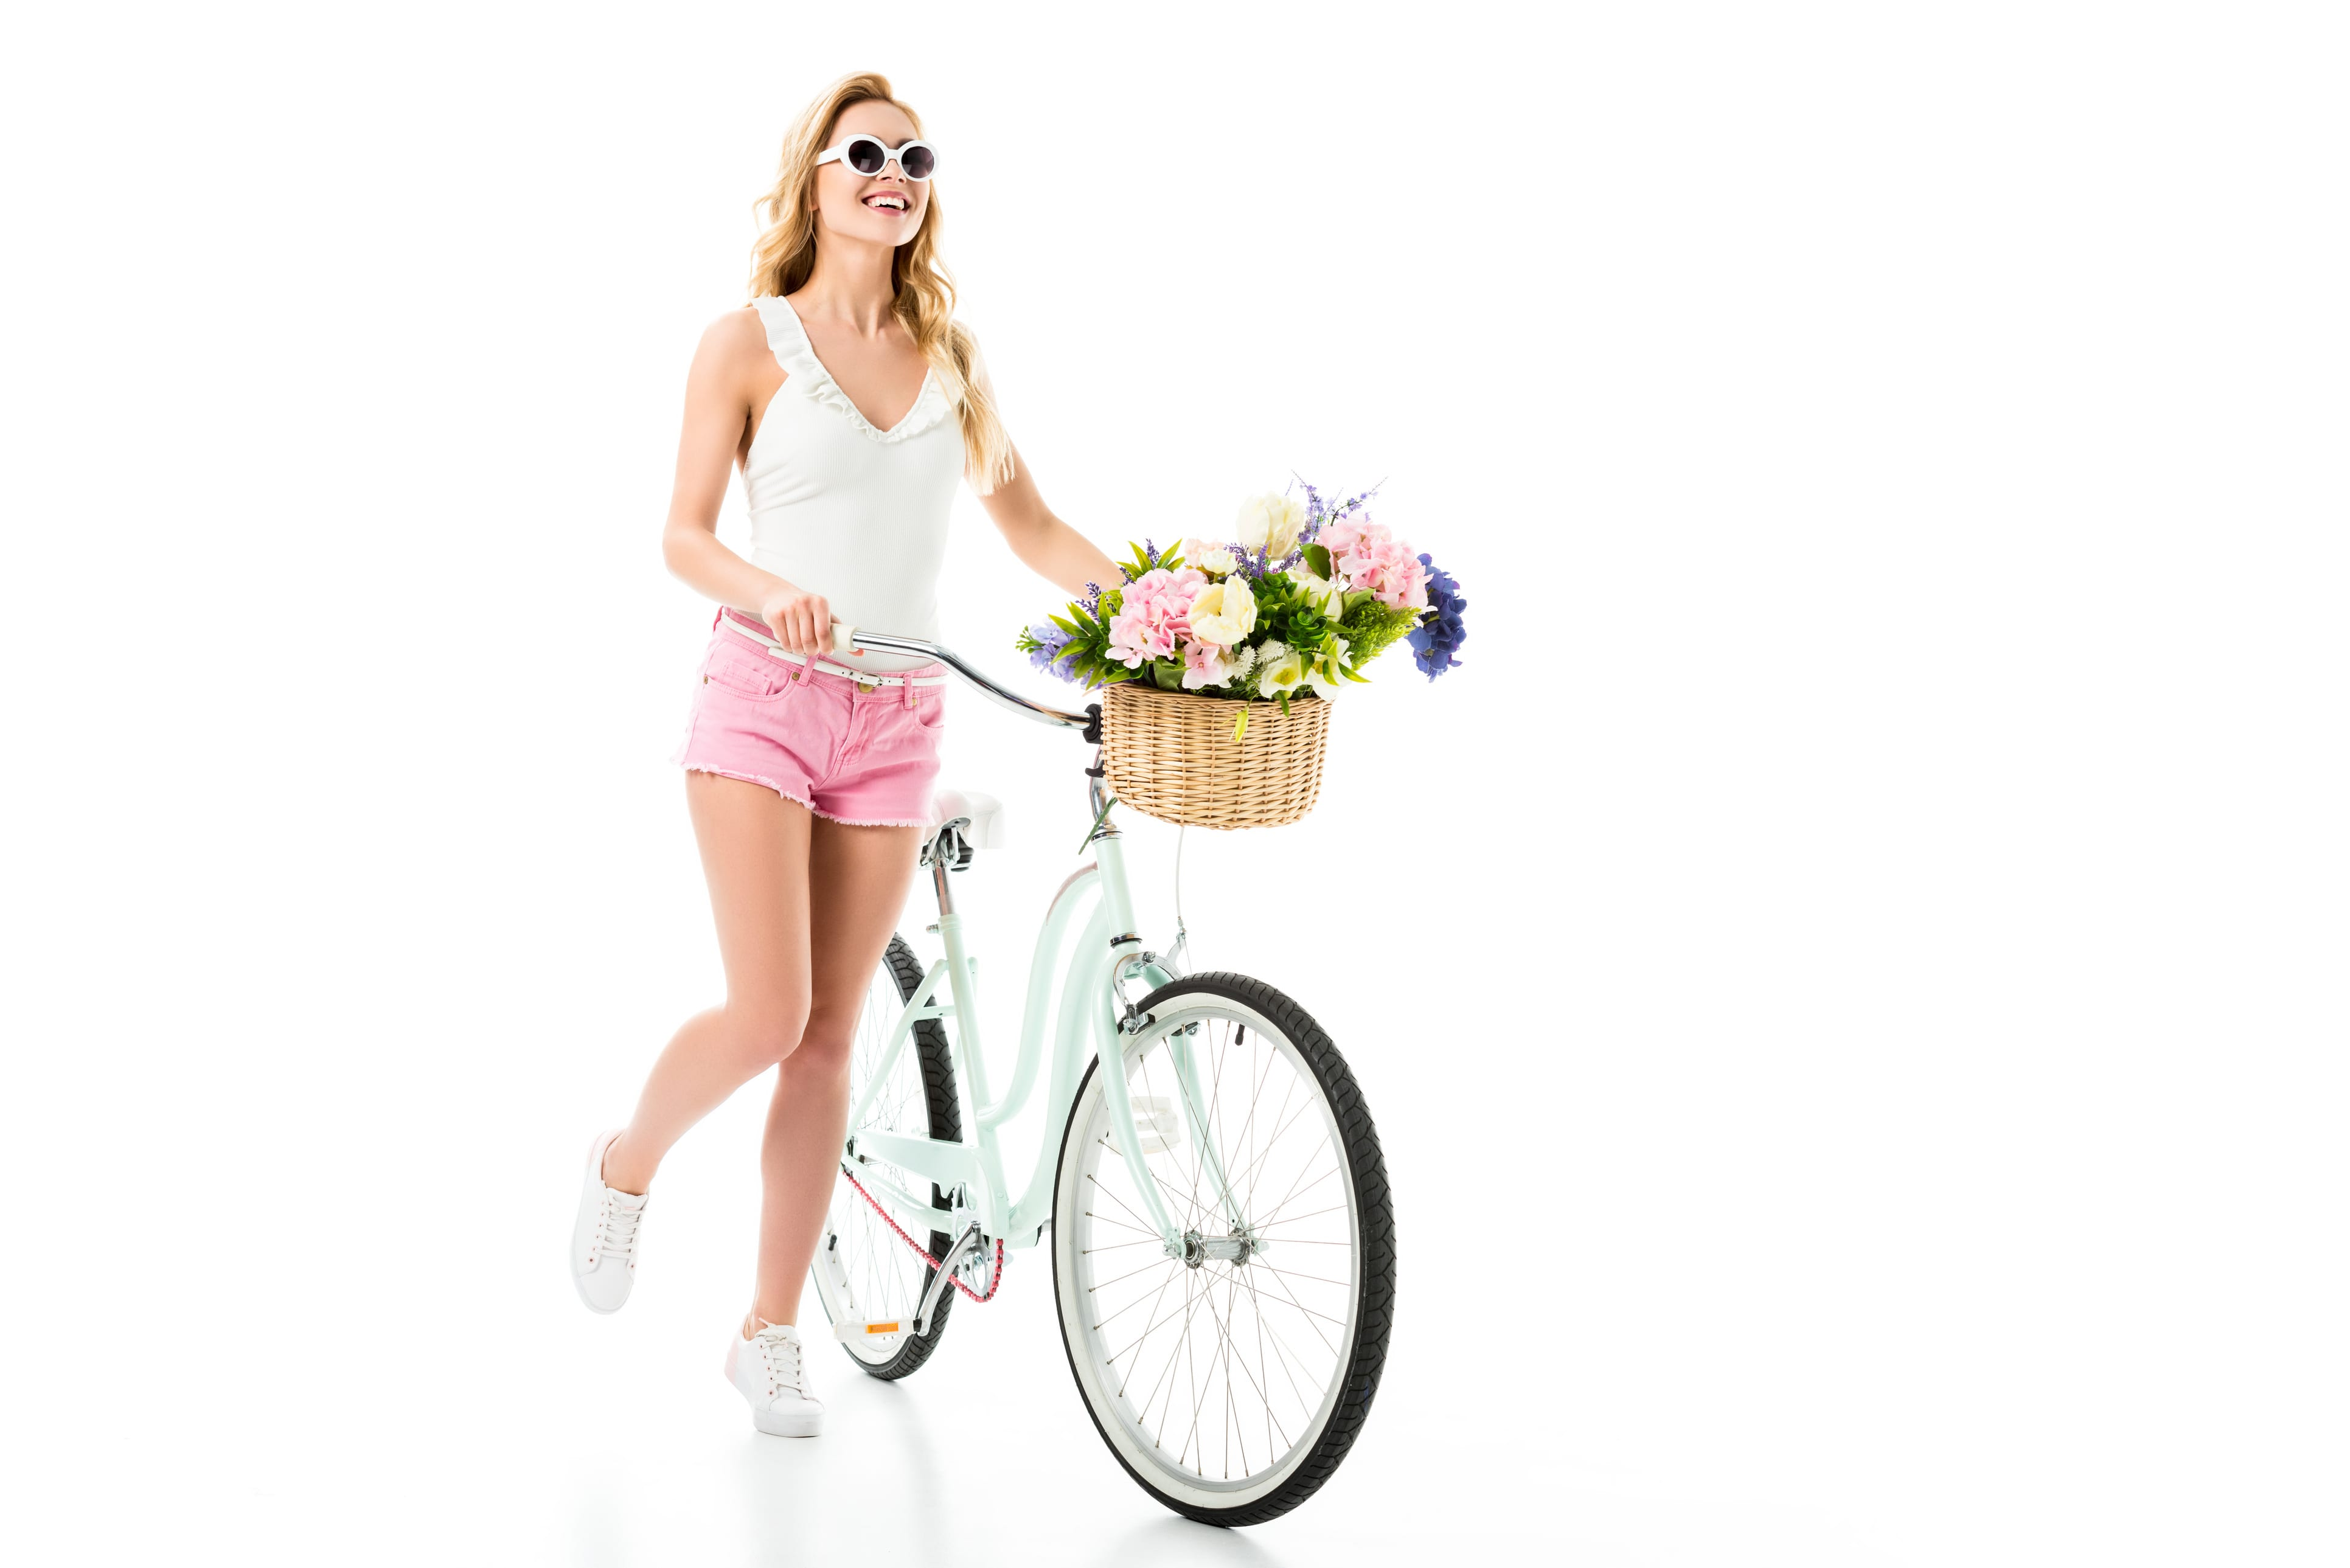 Young girl in sunglasses standing by cruiser bicycle